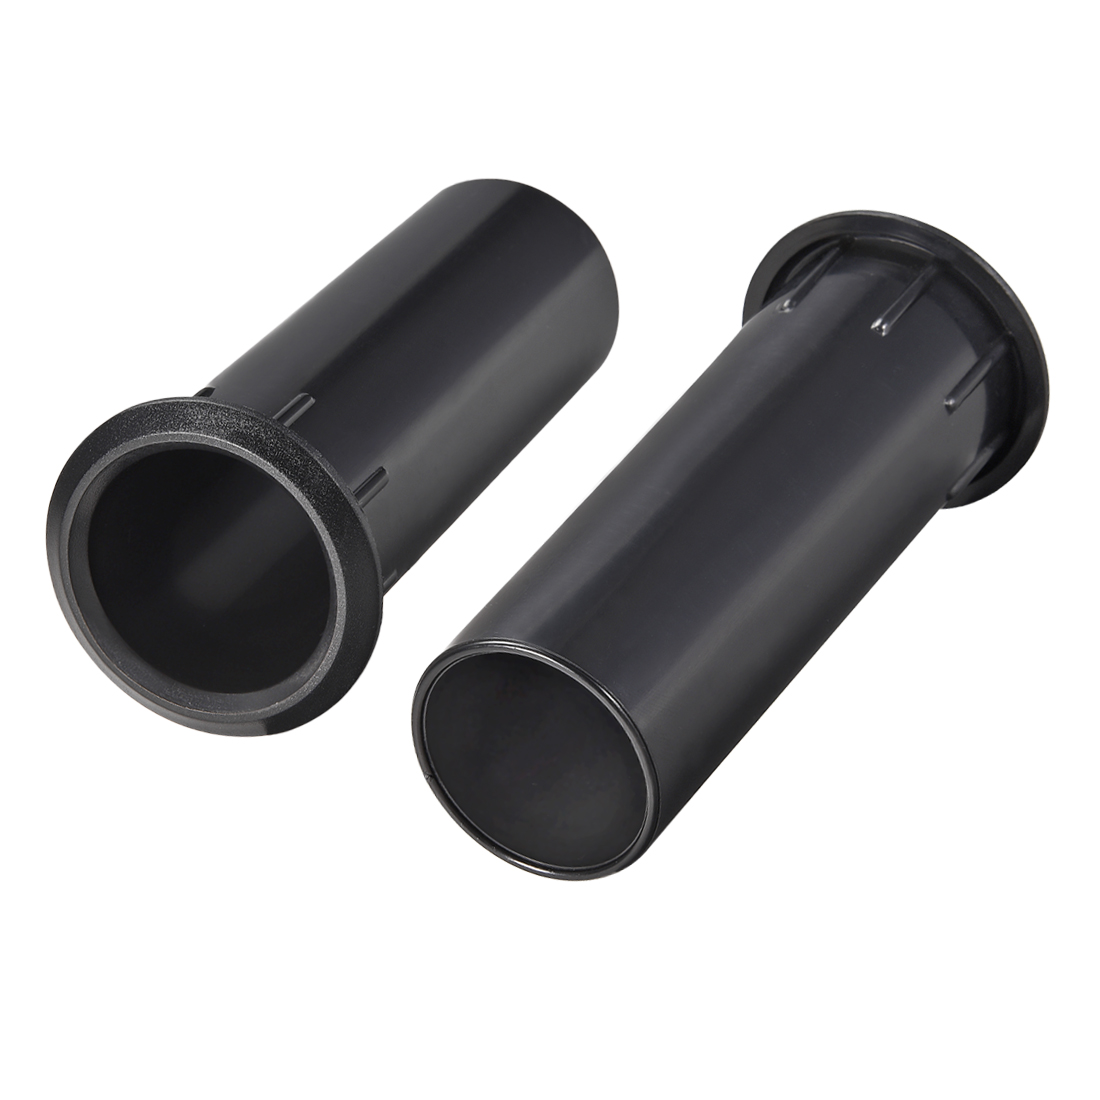 41mm x 117mm Speaker Port Tube Subwoofer Bass Reflex Tube Bass Woofer Box 2pcs